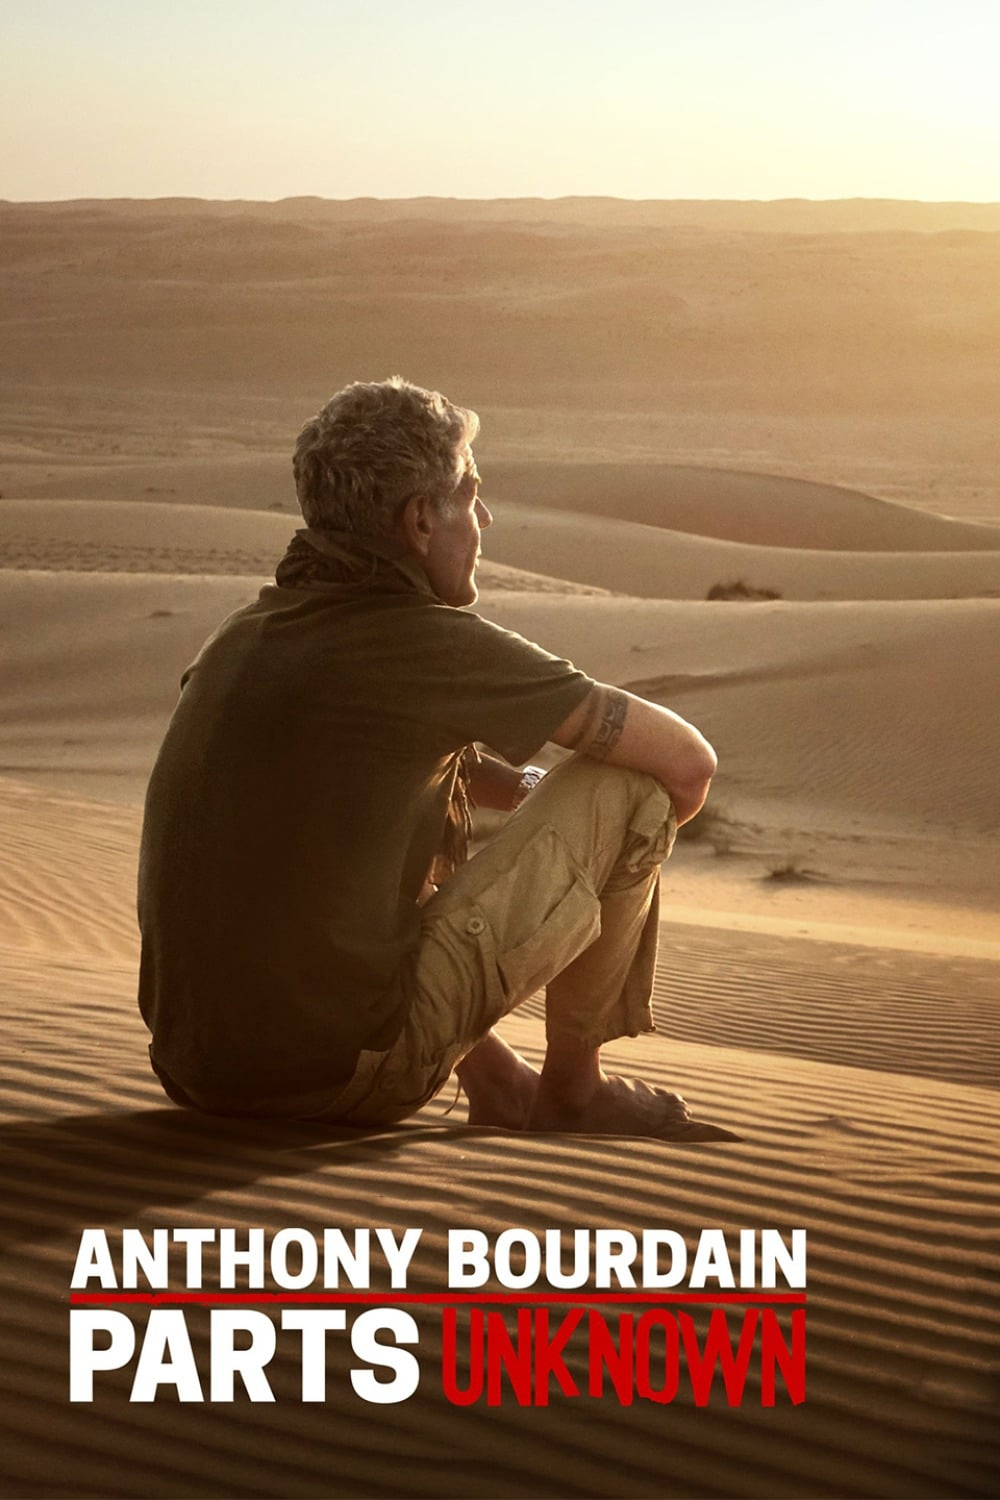 image for Anthony Bourdain: Parts Unknown